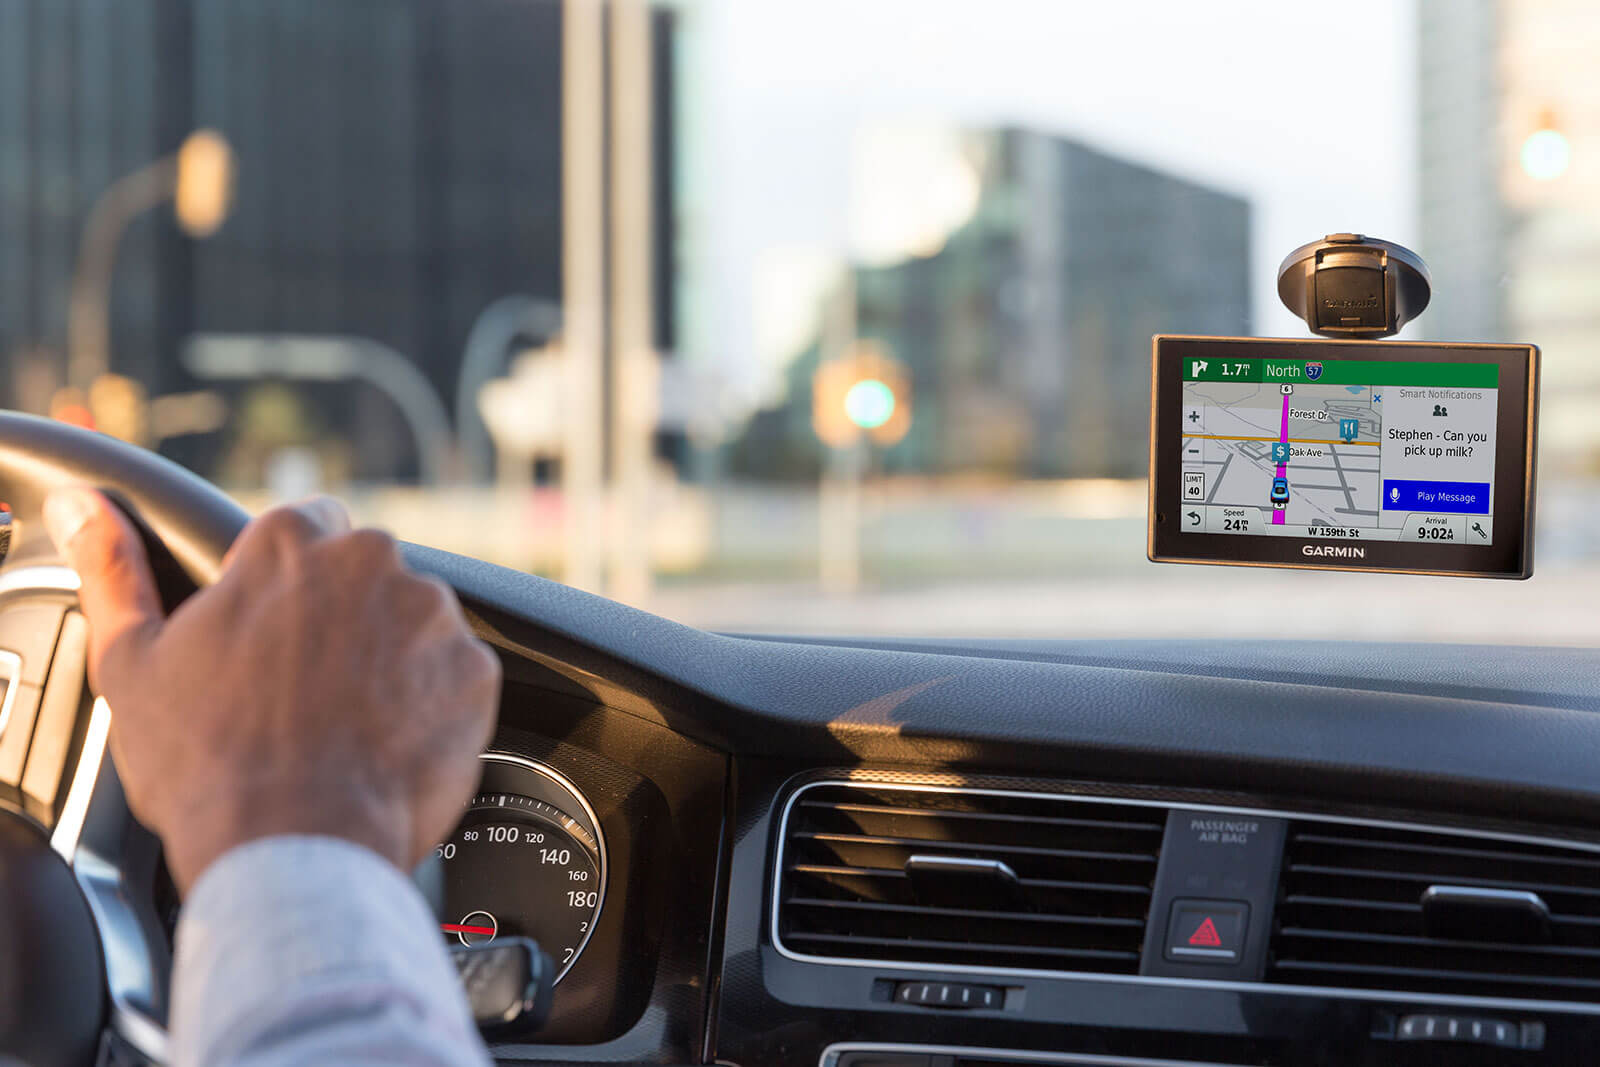 Car GPS Market is Expected to Grow at High CAGR During 2019 to 2024